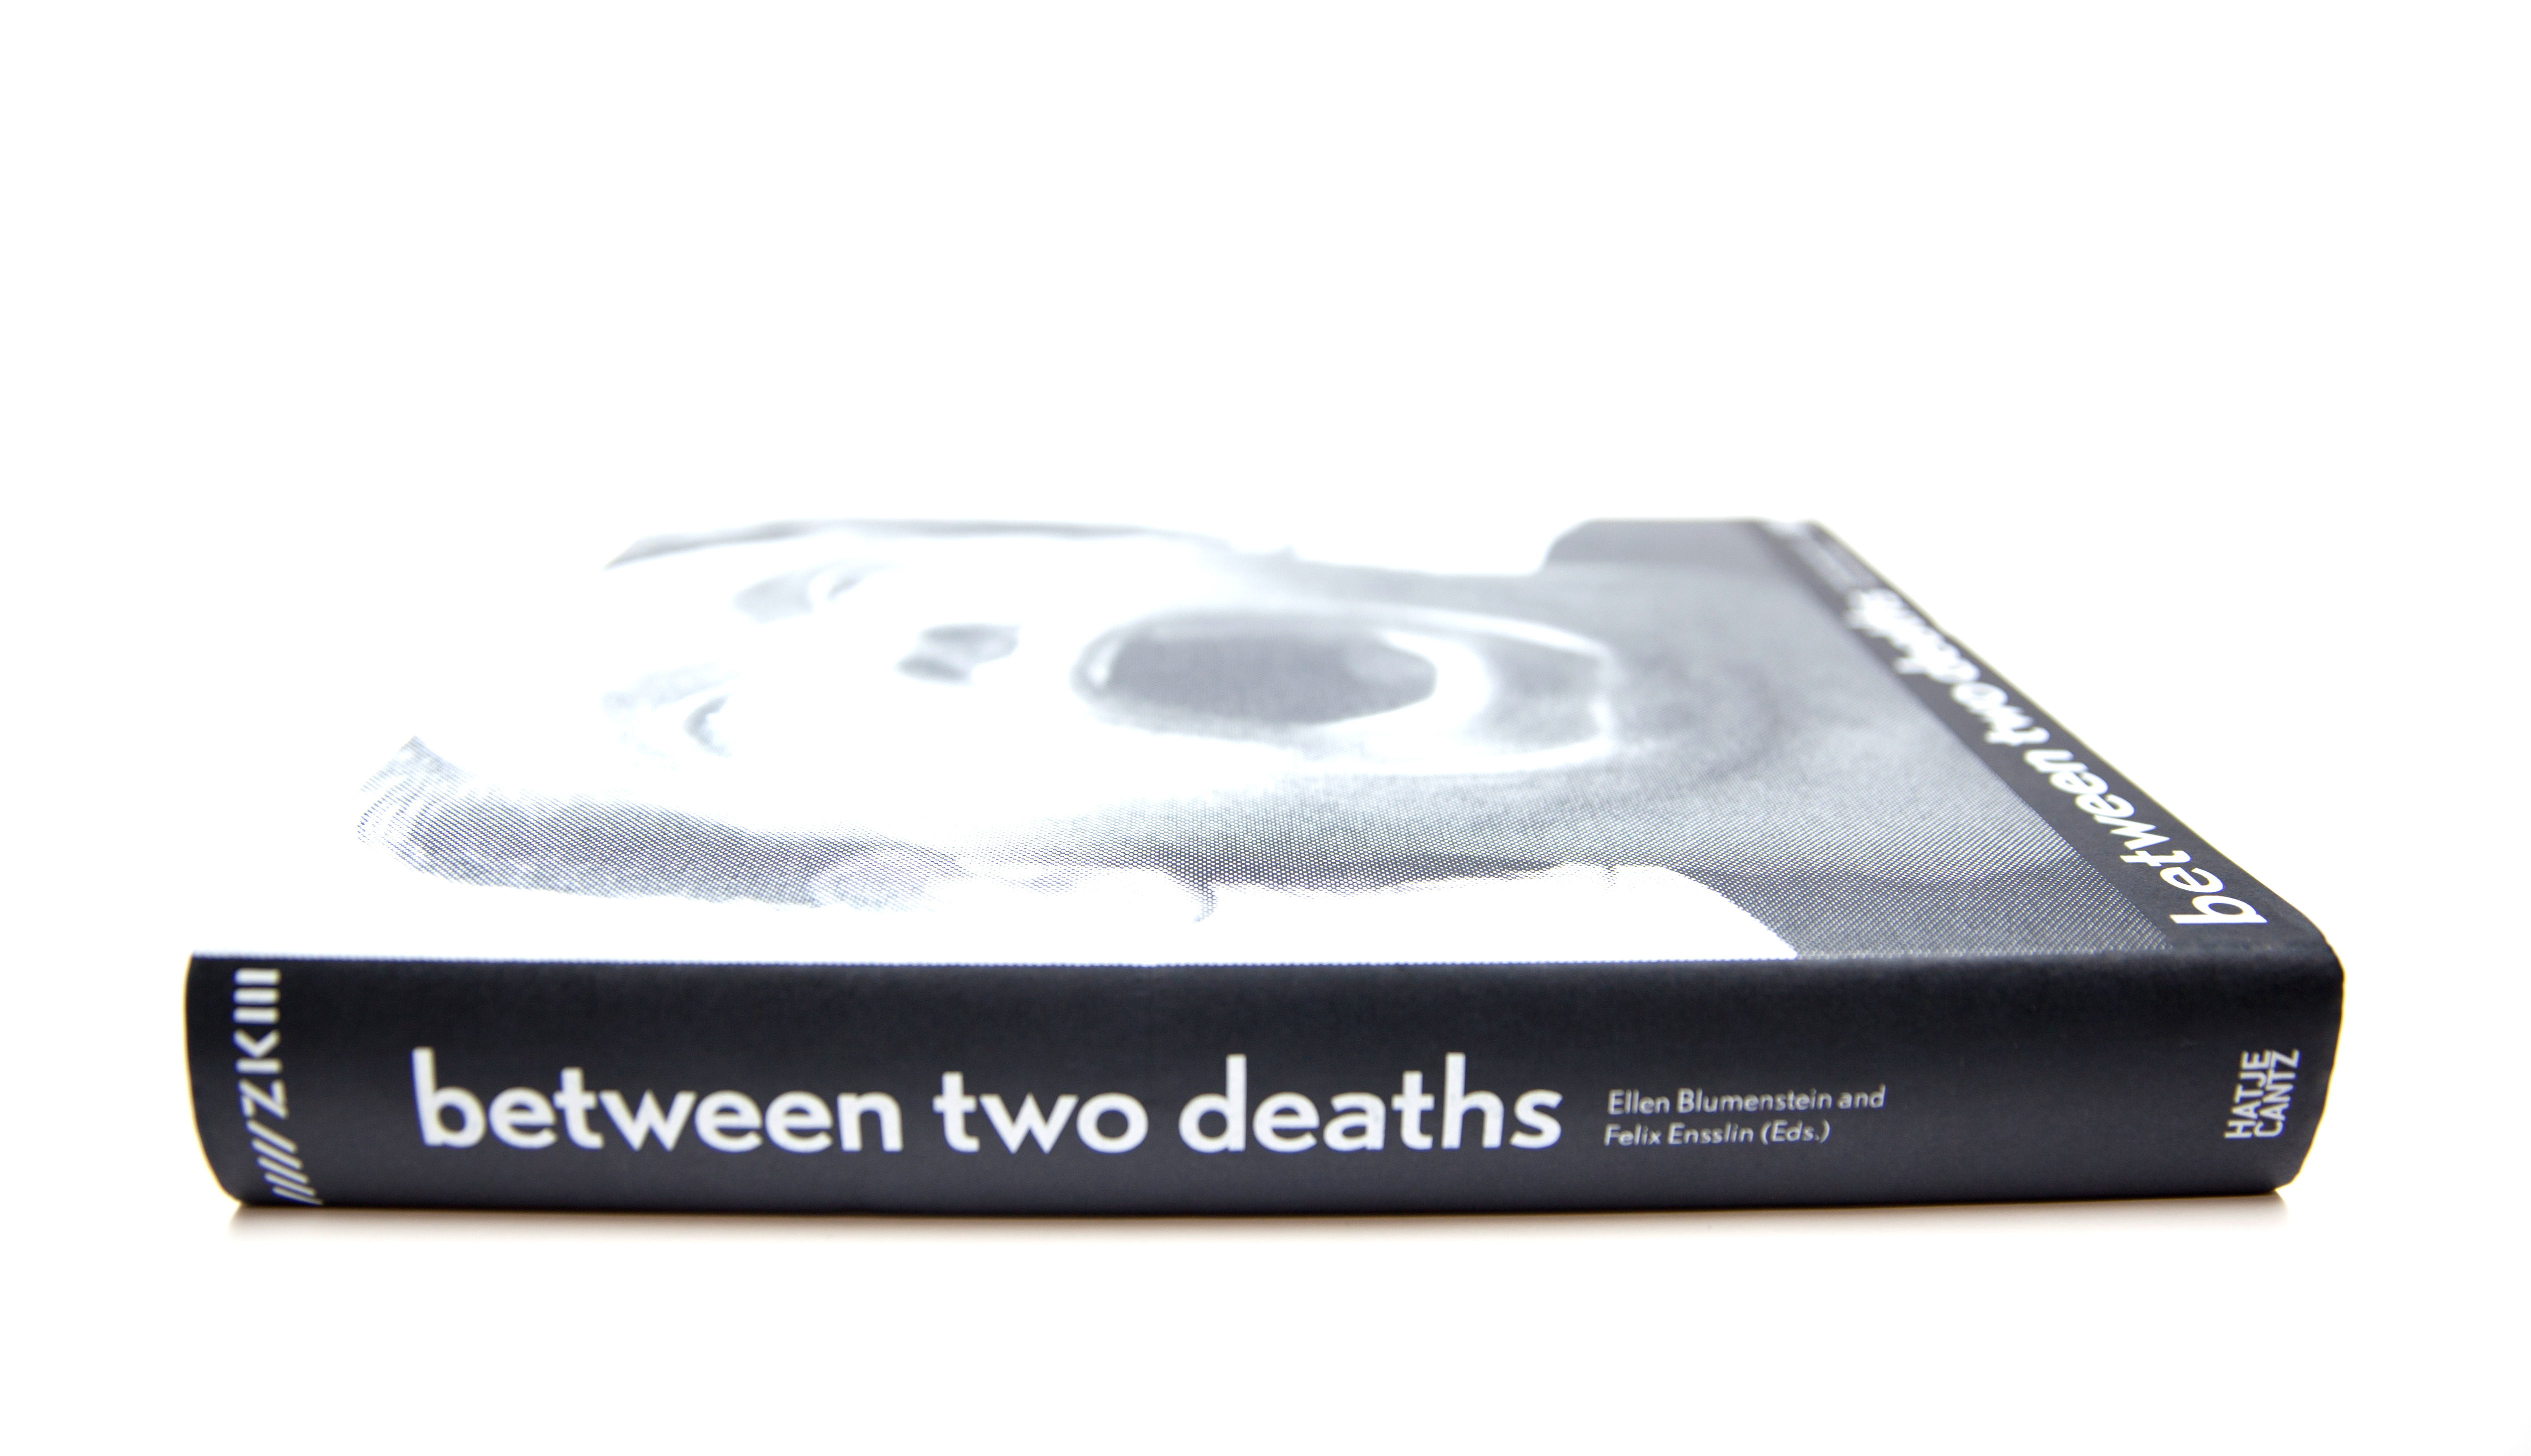 Between Two Deaths